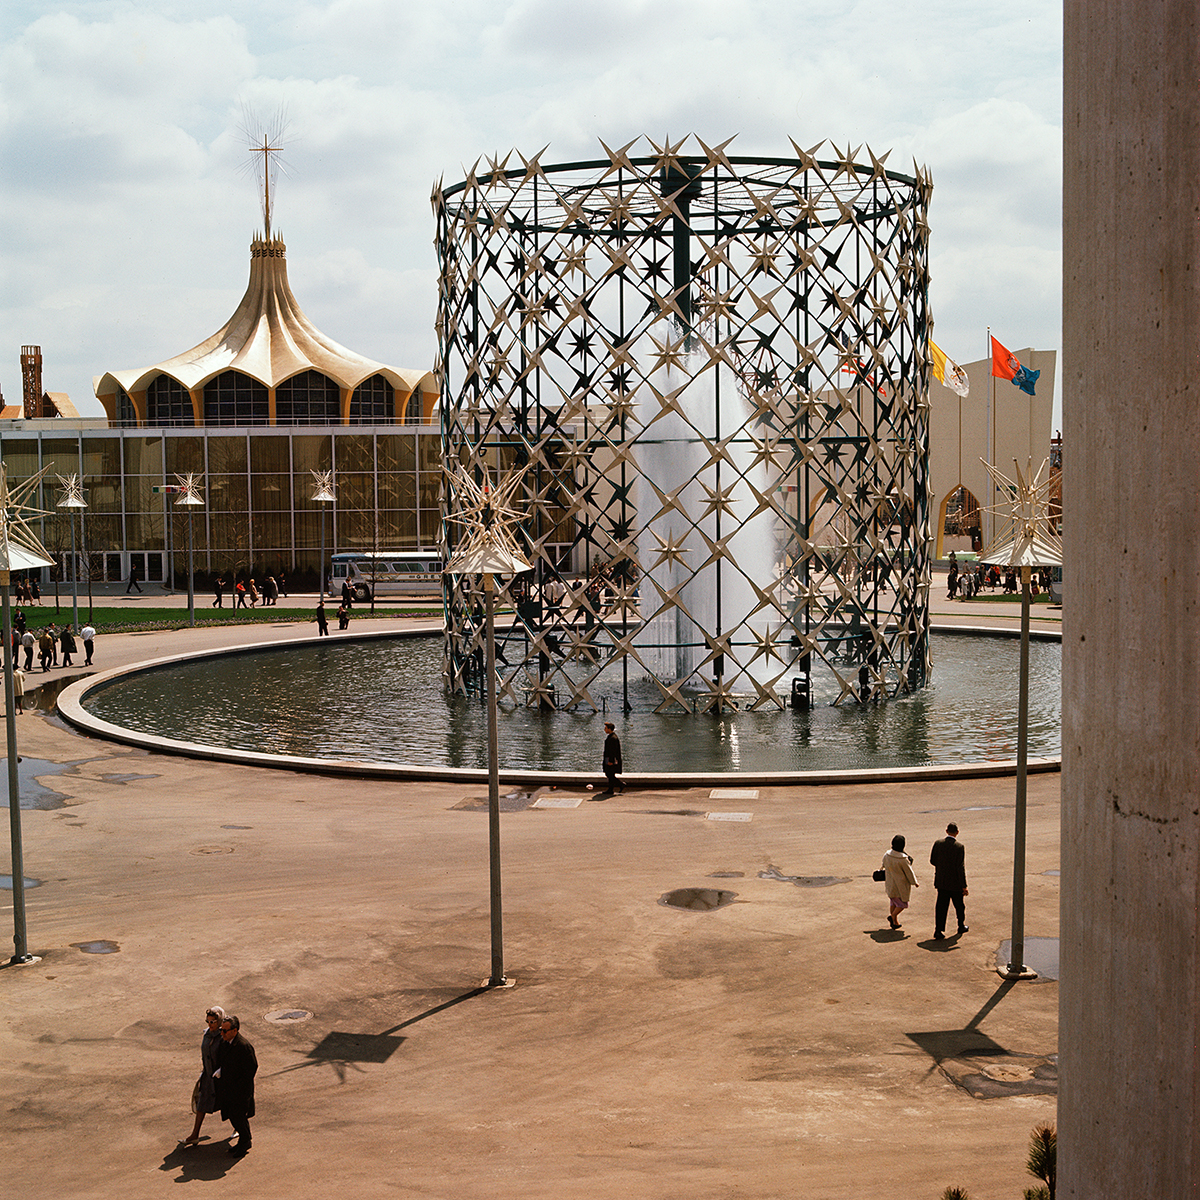 Van Williams American, dates unknown Digital prints from scanned original Ektachrome film Astral Fountain and Vatican Pavilion, 1964